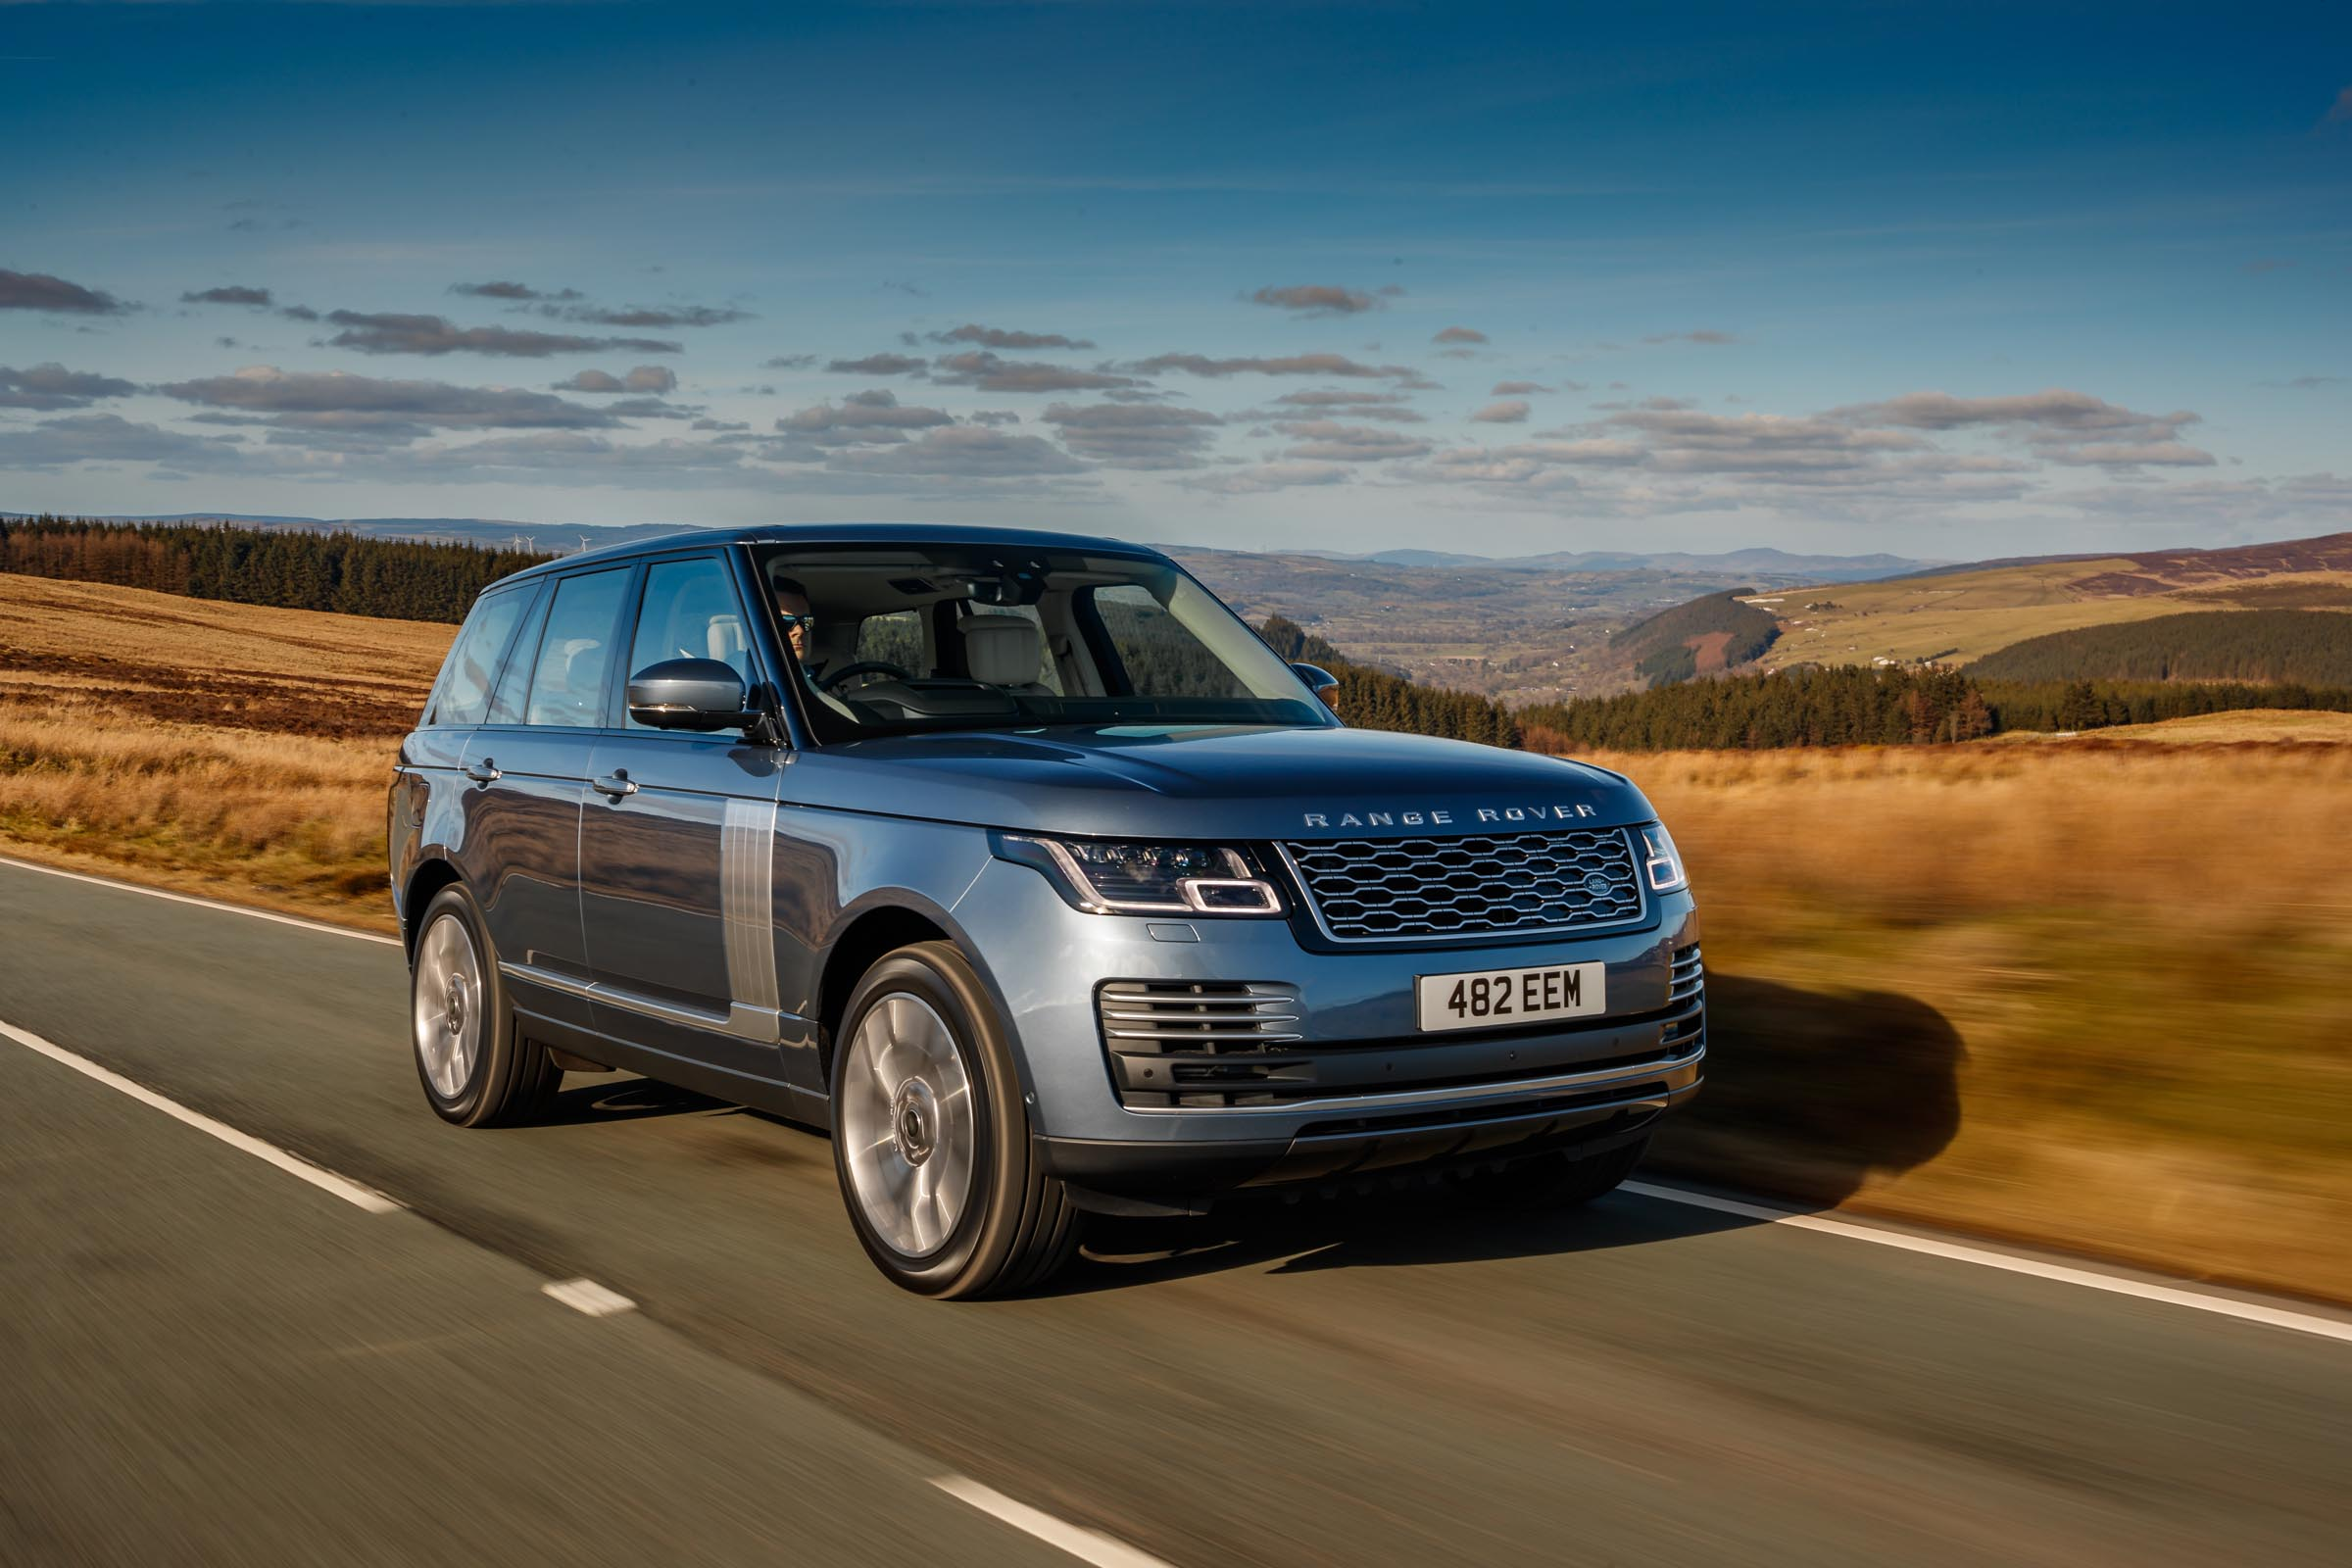 Range Rover PHEV review - we meet the P400e luxury plug-in